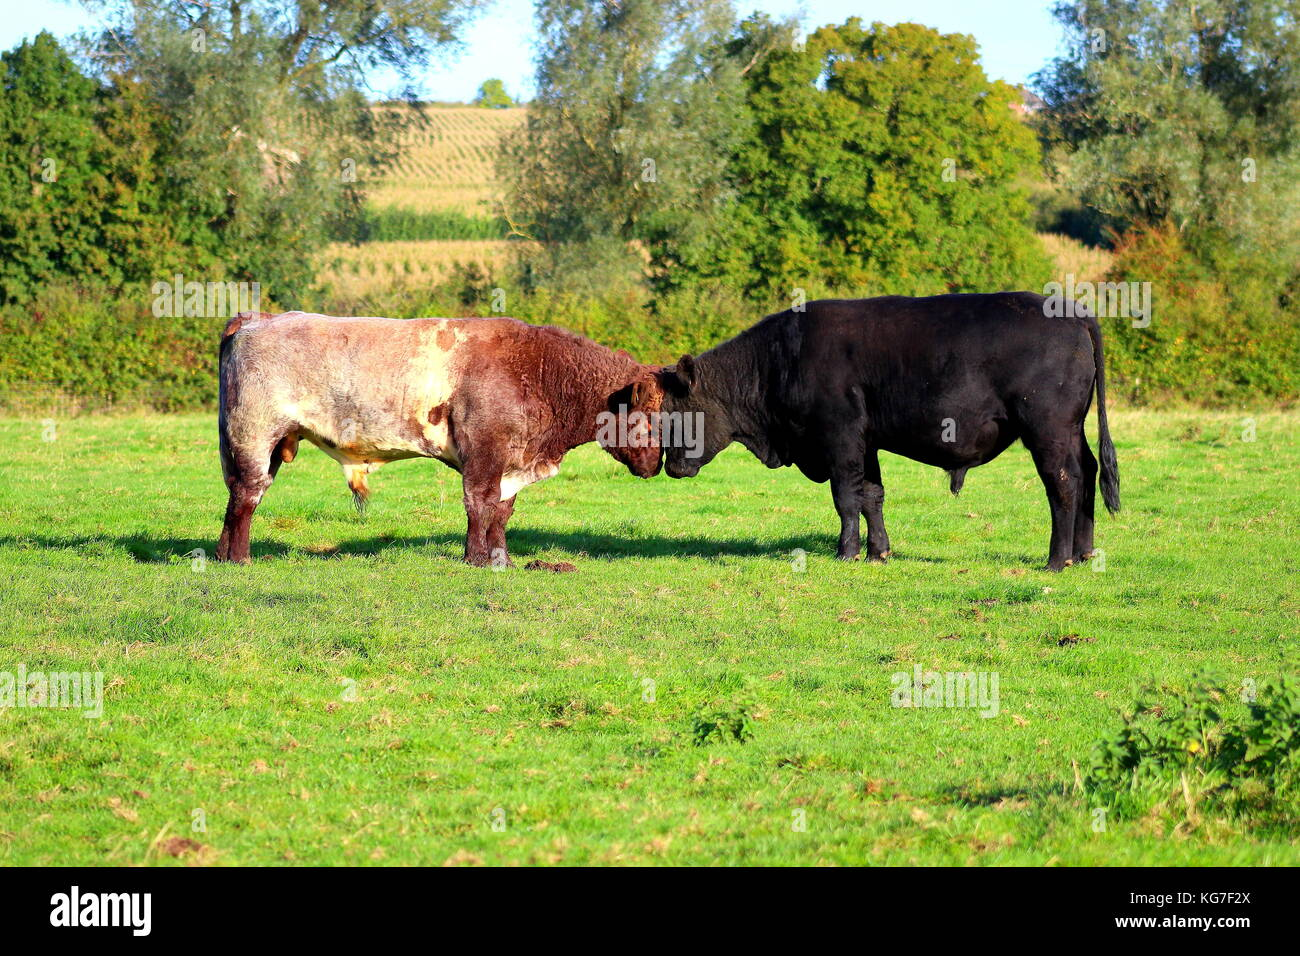 shorthorn and angus bulls fighting for dominance - Stock Image